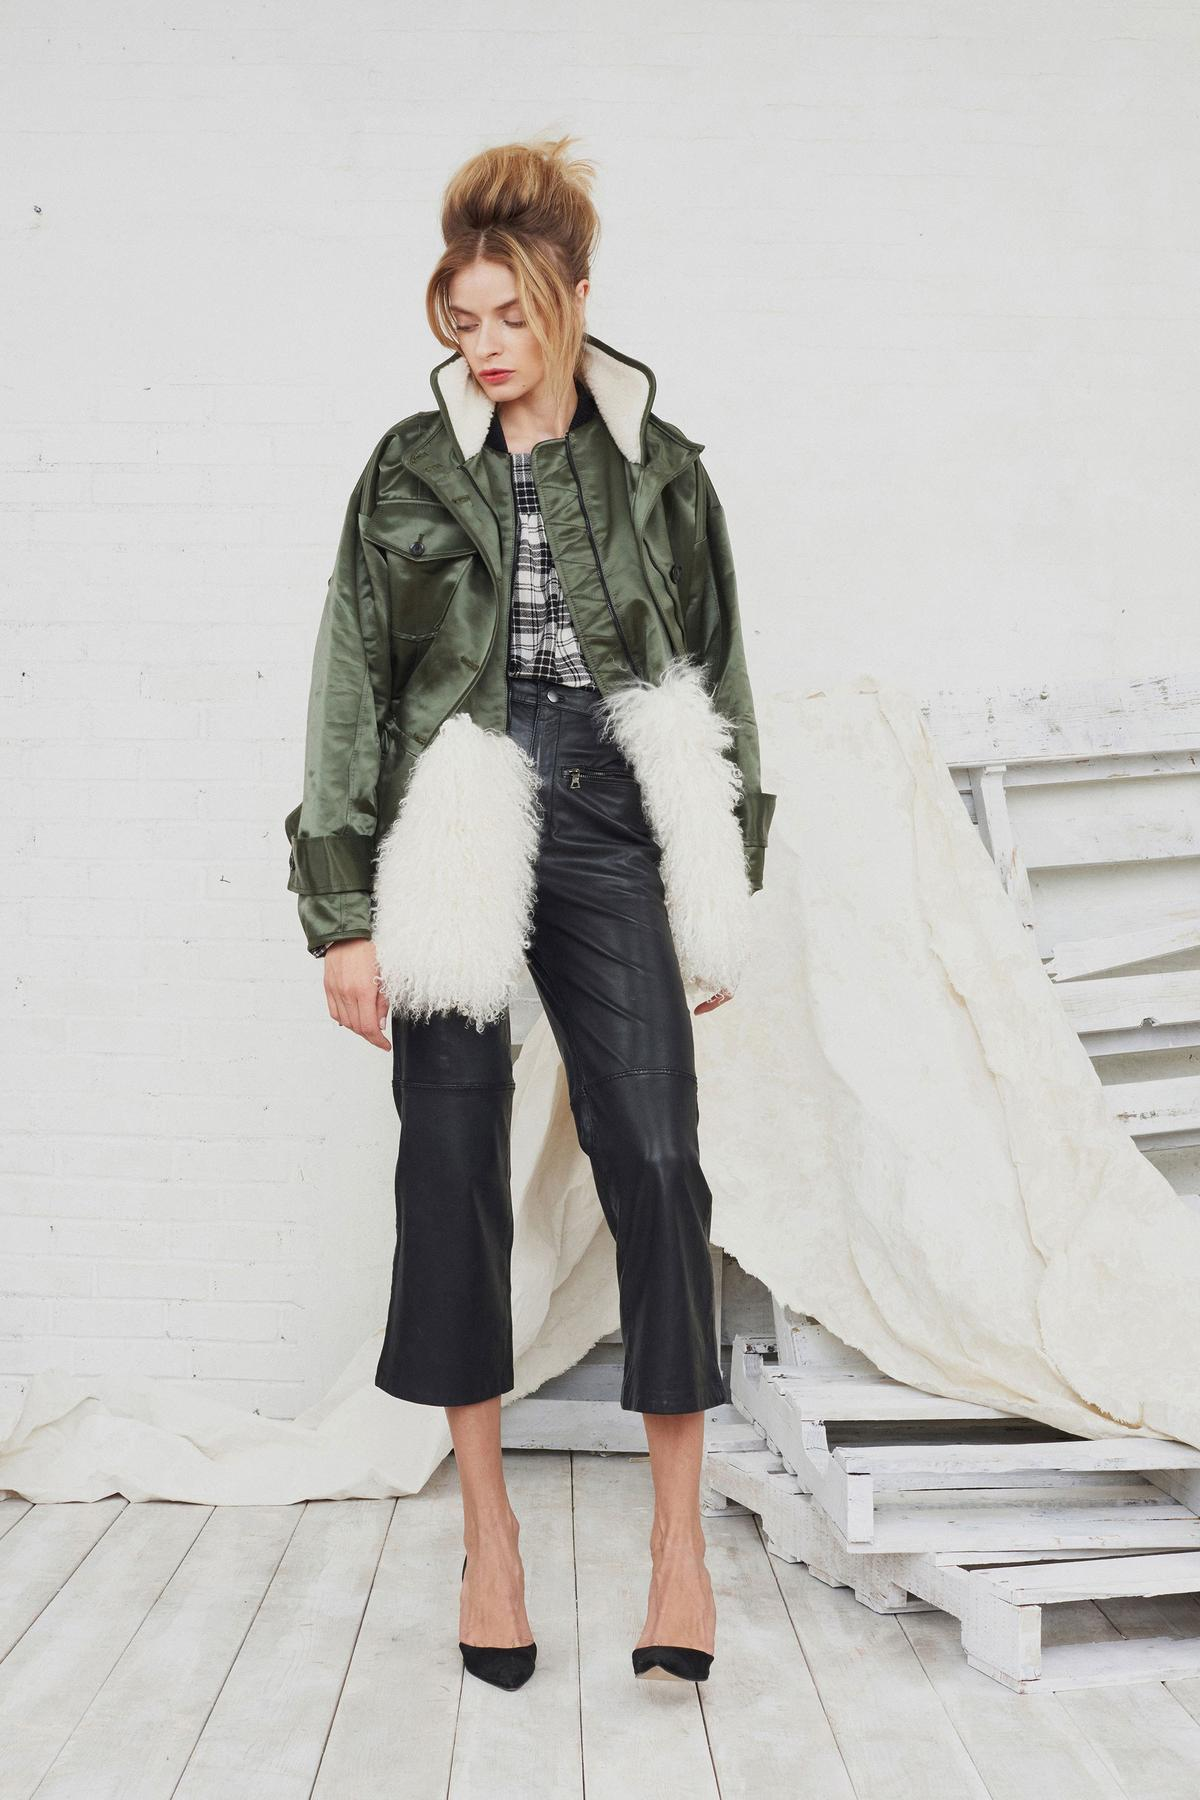 satin army green jacket with faux fur, leather pants